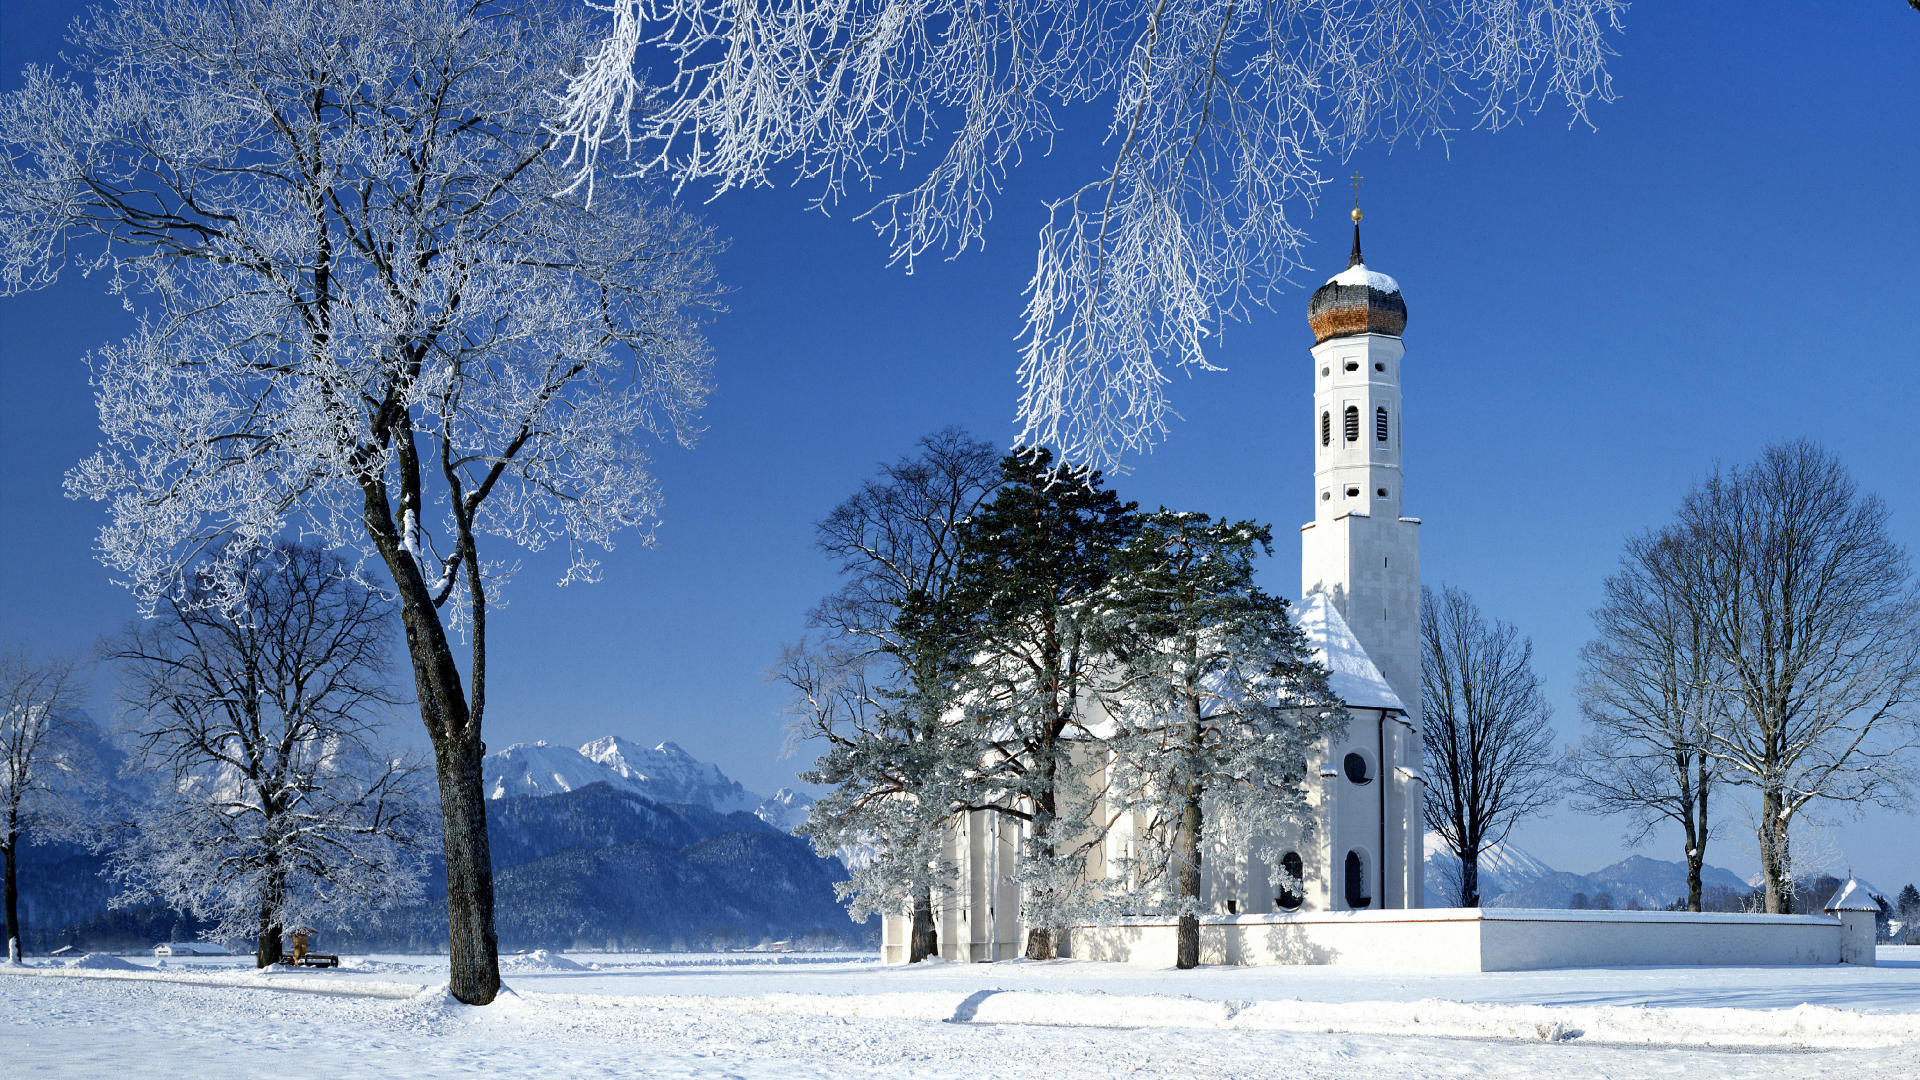 winter background photo 1920x1080 1920x1080